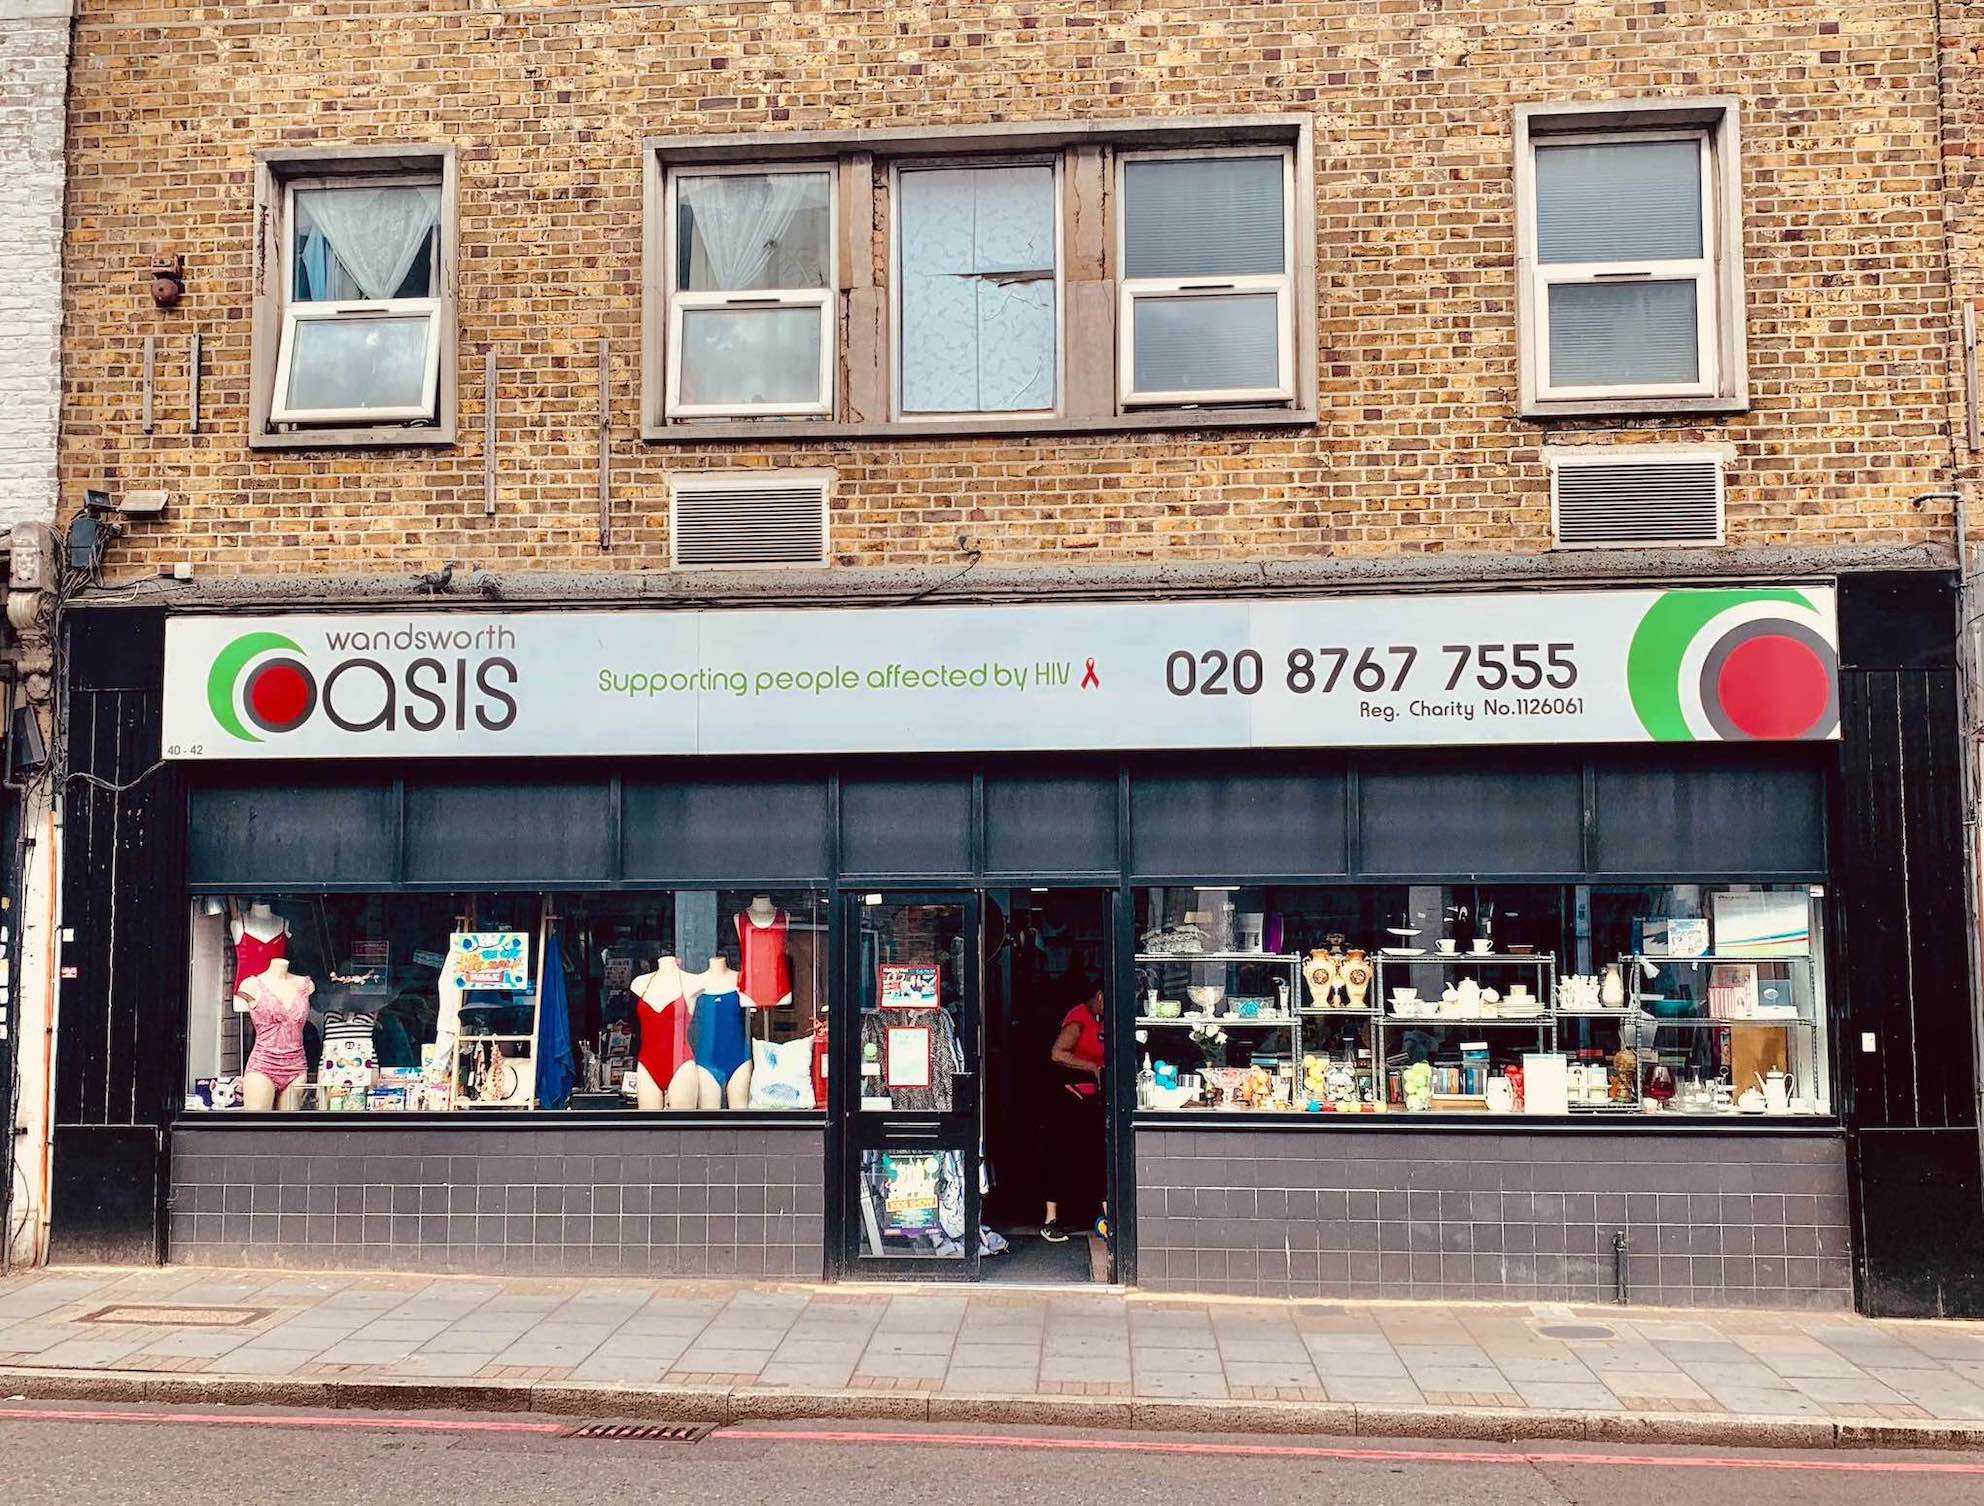 Wandsworth Oasis Charity Shop Cool Spots Around Tooting Bec